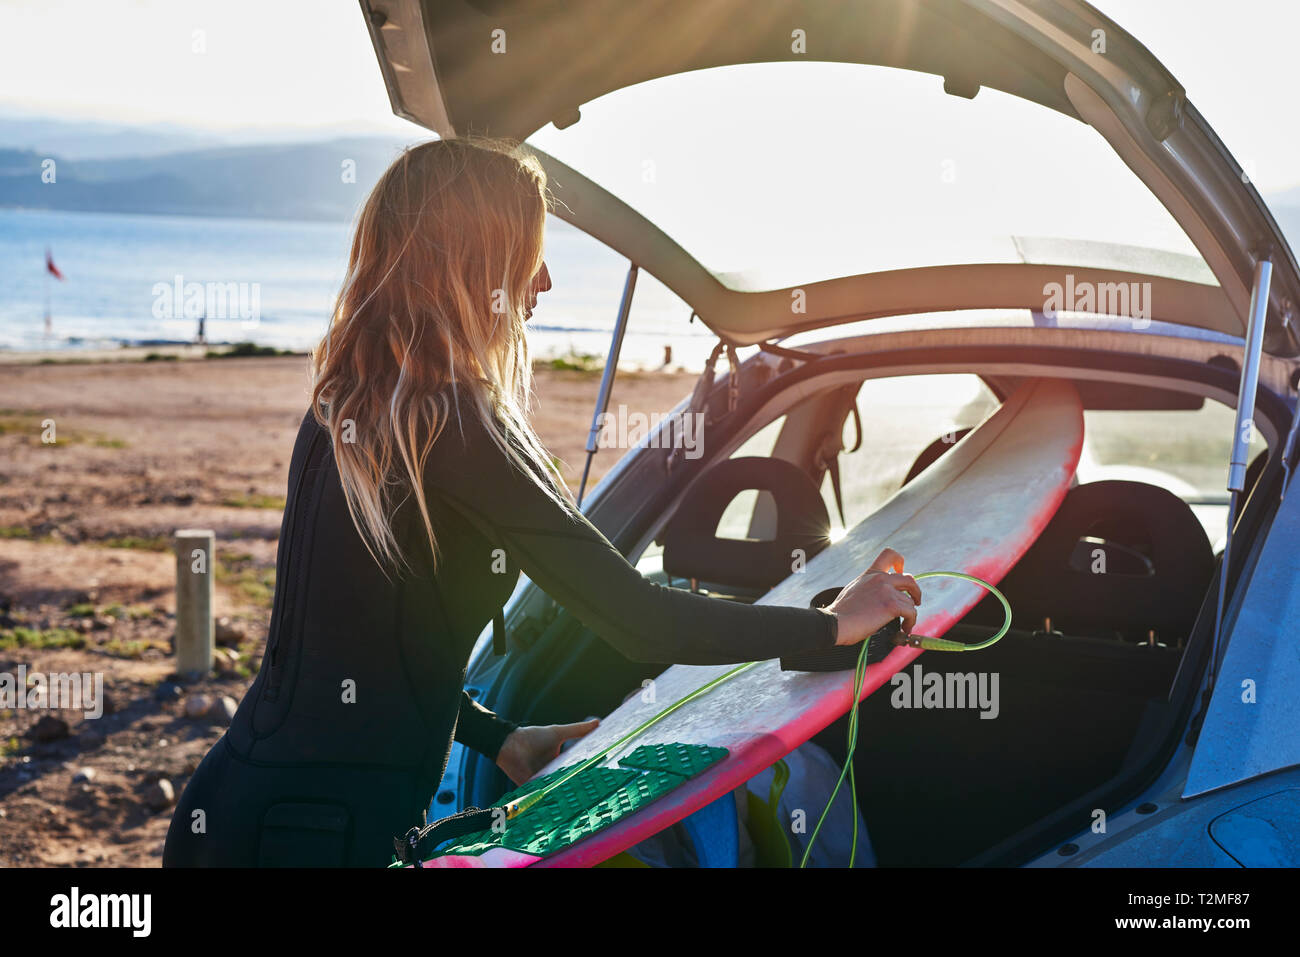 Young woman removing surfboard from car boot Stock Photo